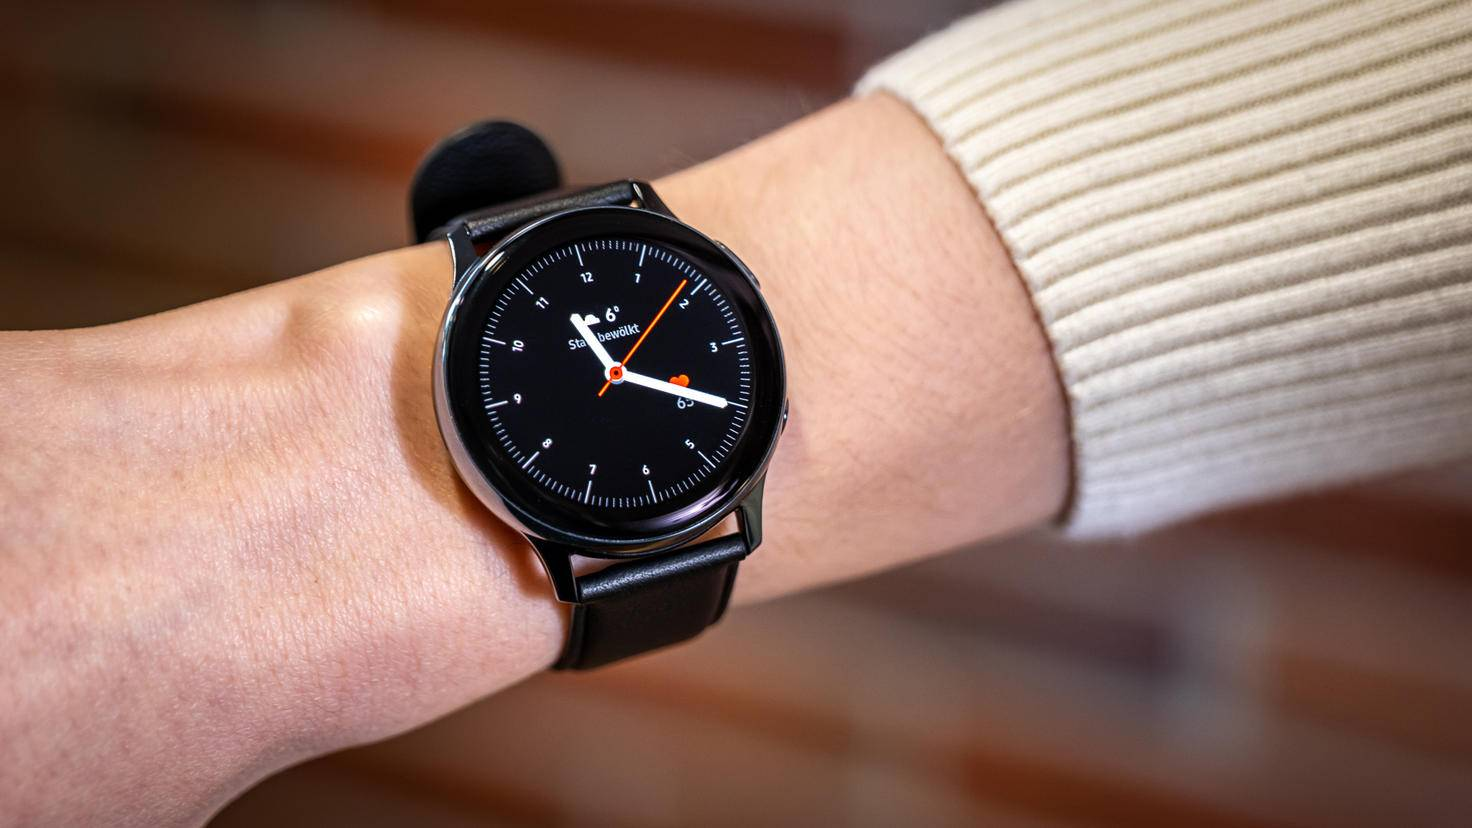 Display of the Samsung Galaxy Watch Active 2